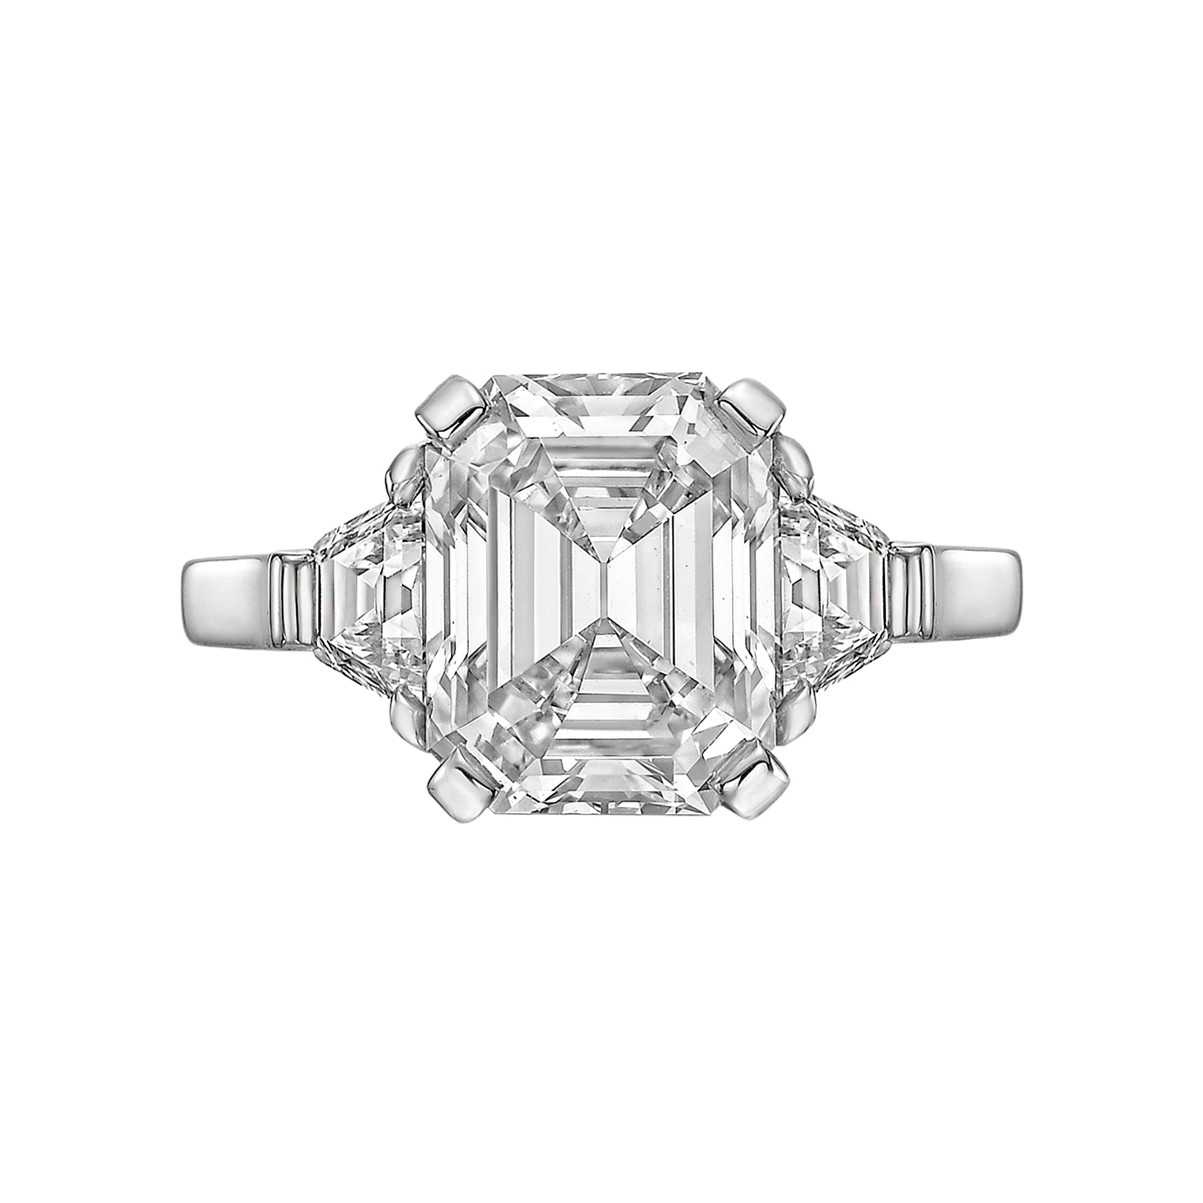 3.24ct Emerald-Cut Diamond Ring (F/VS1)